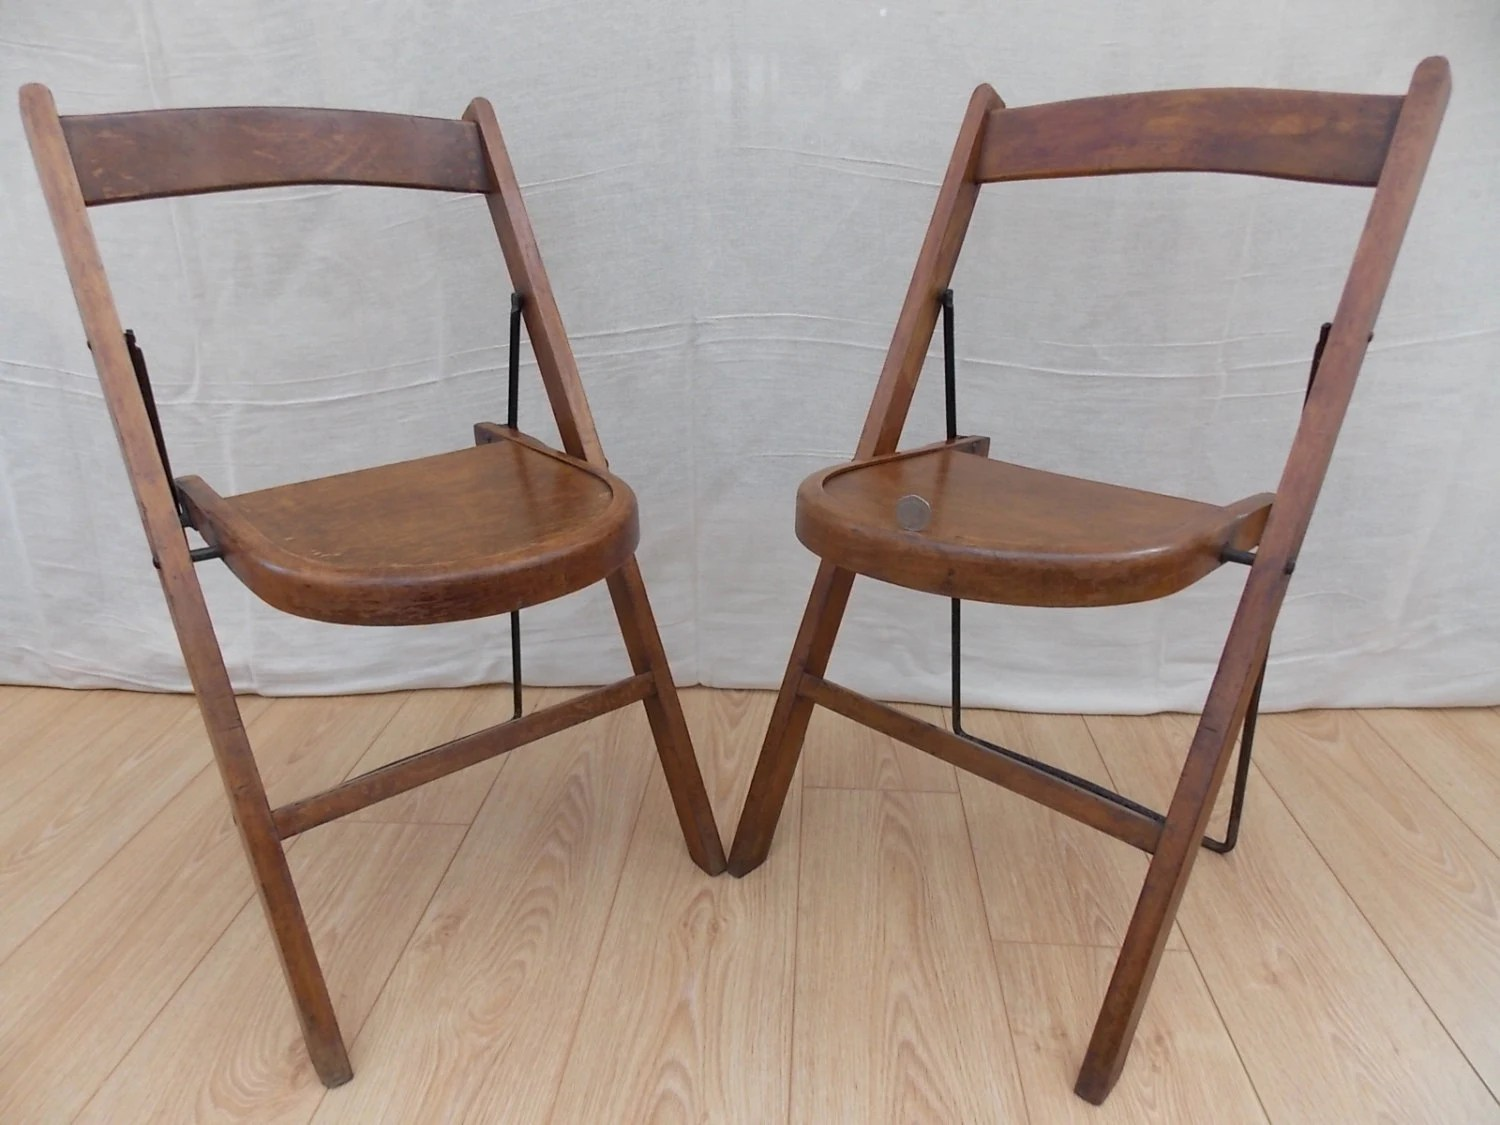 Stakmore Folding Chair Vintage 1939 Stakmore Folding Chair By Oakwellantiques On Etsy